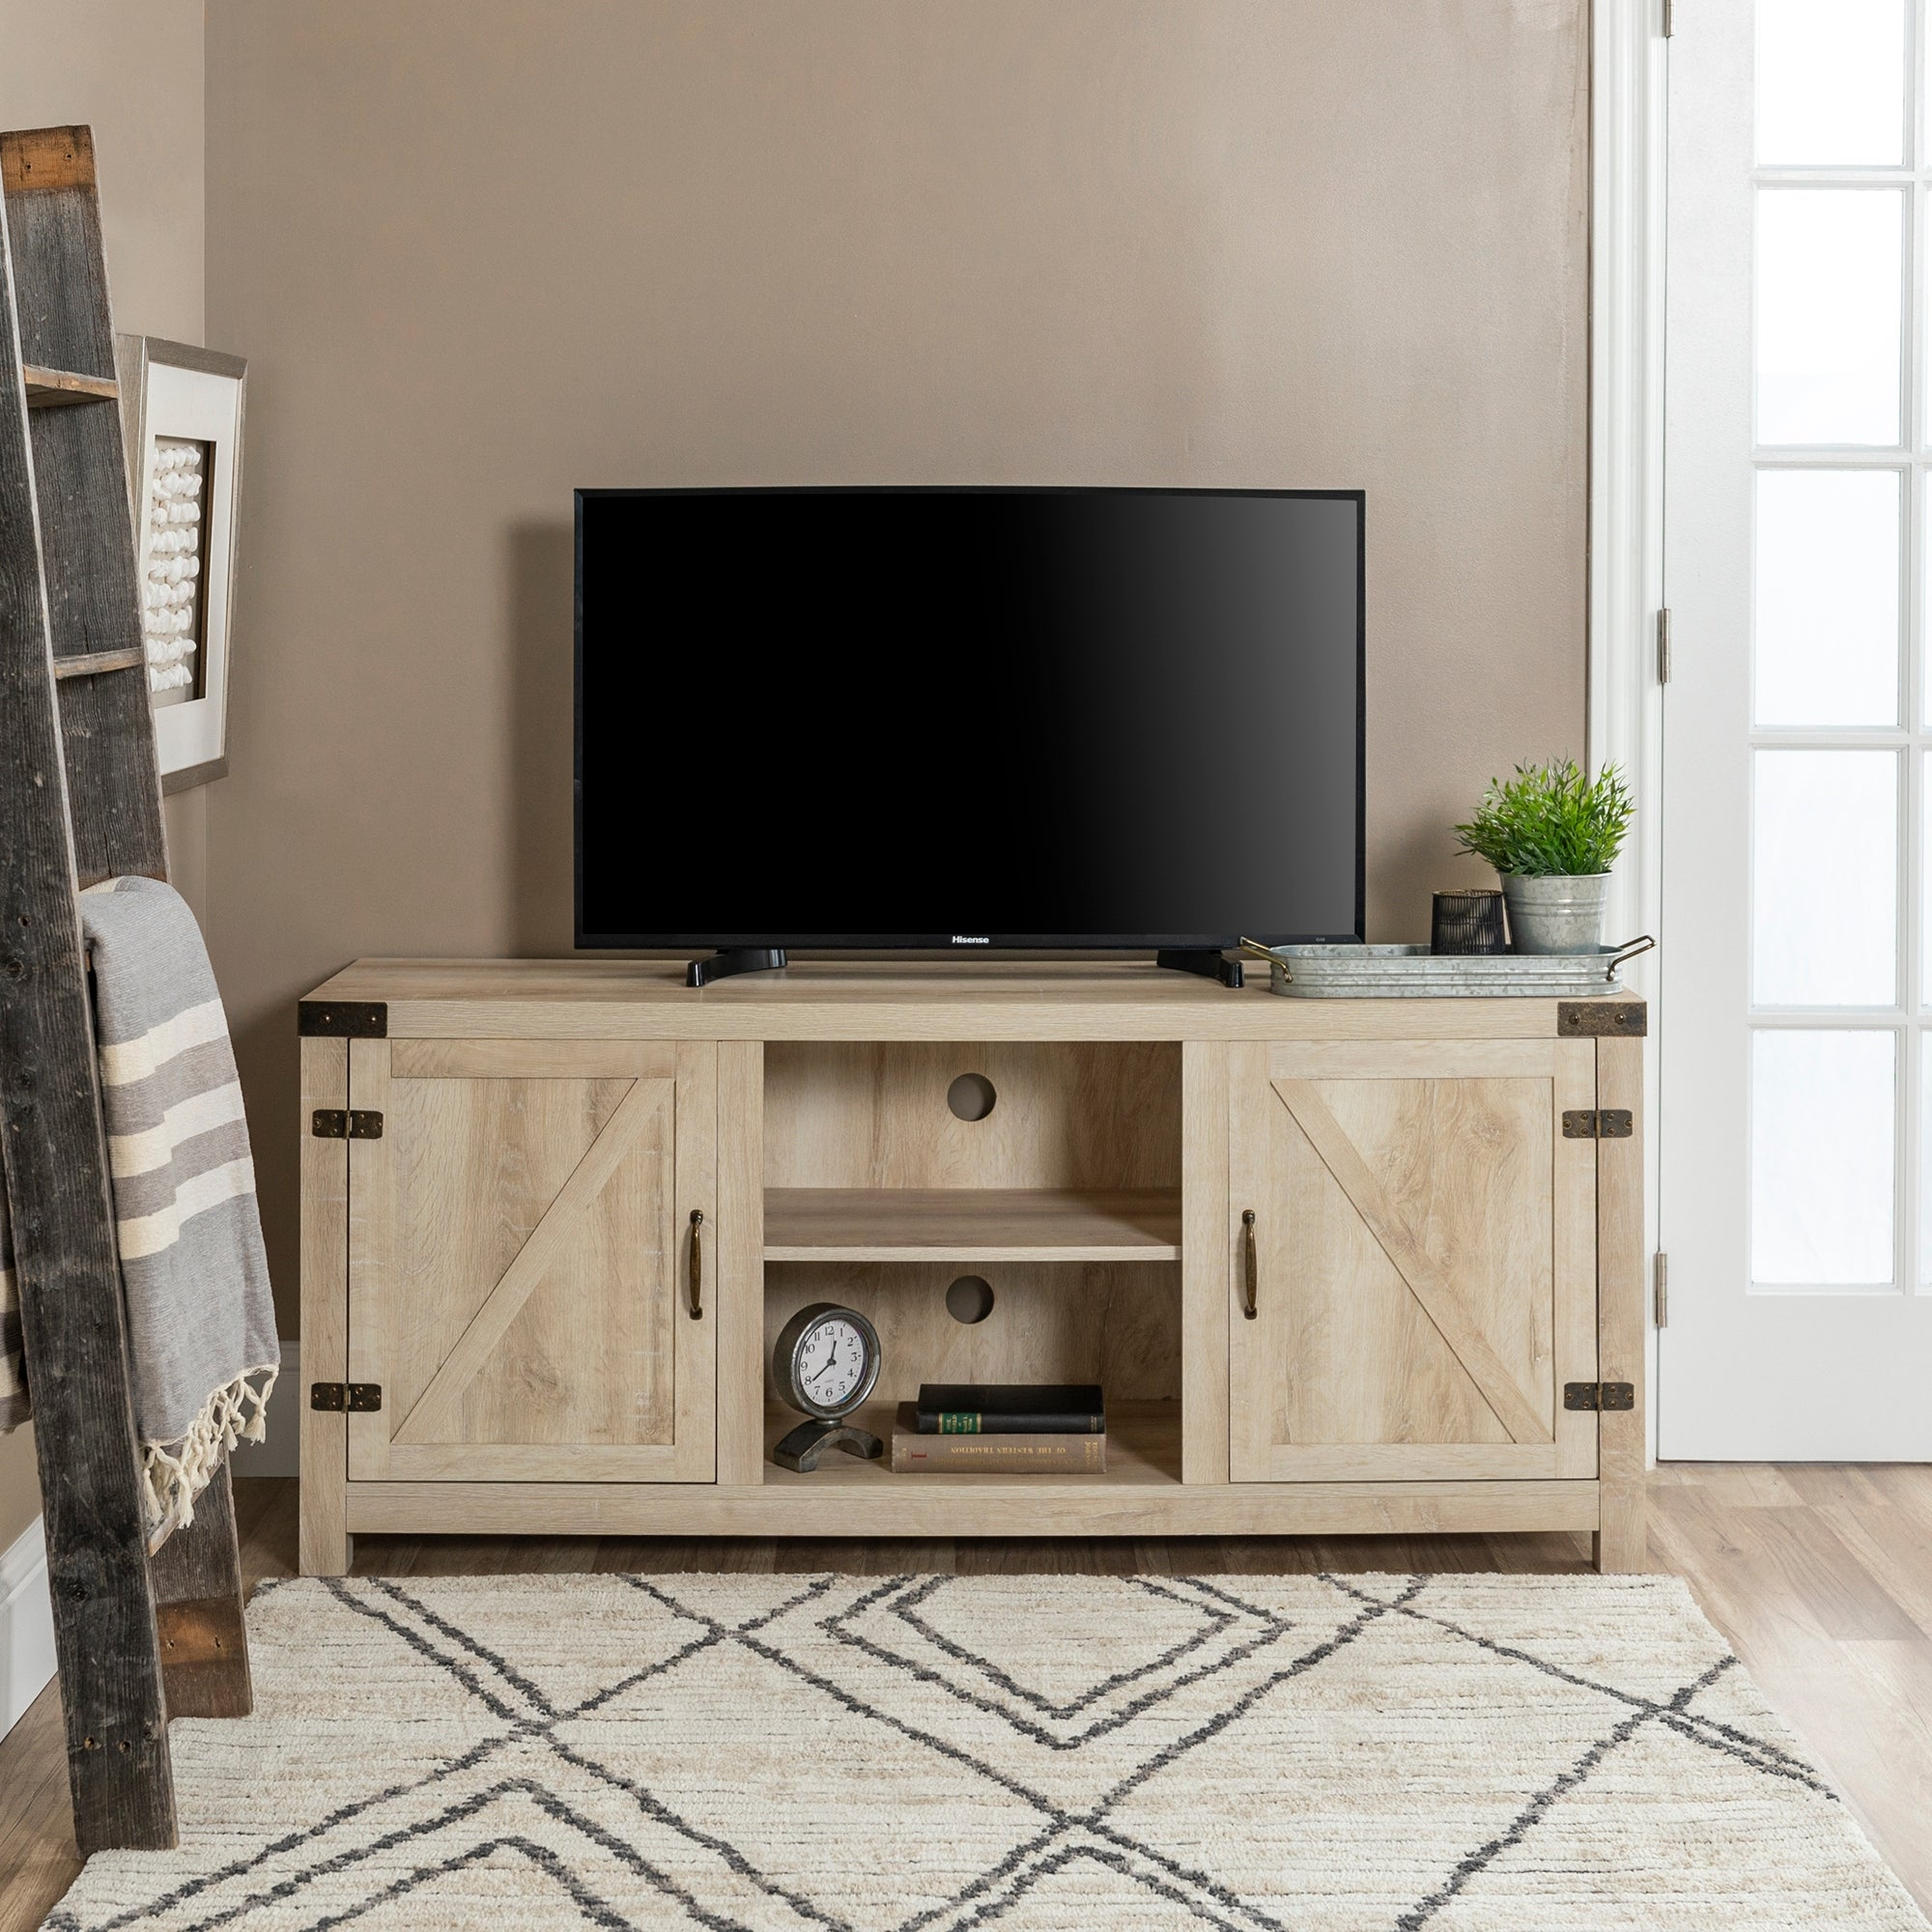 The Gray Barn Firebranch 58 Inch Barn Door Tv Console On Sale Overstock 20559235